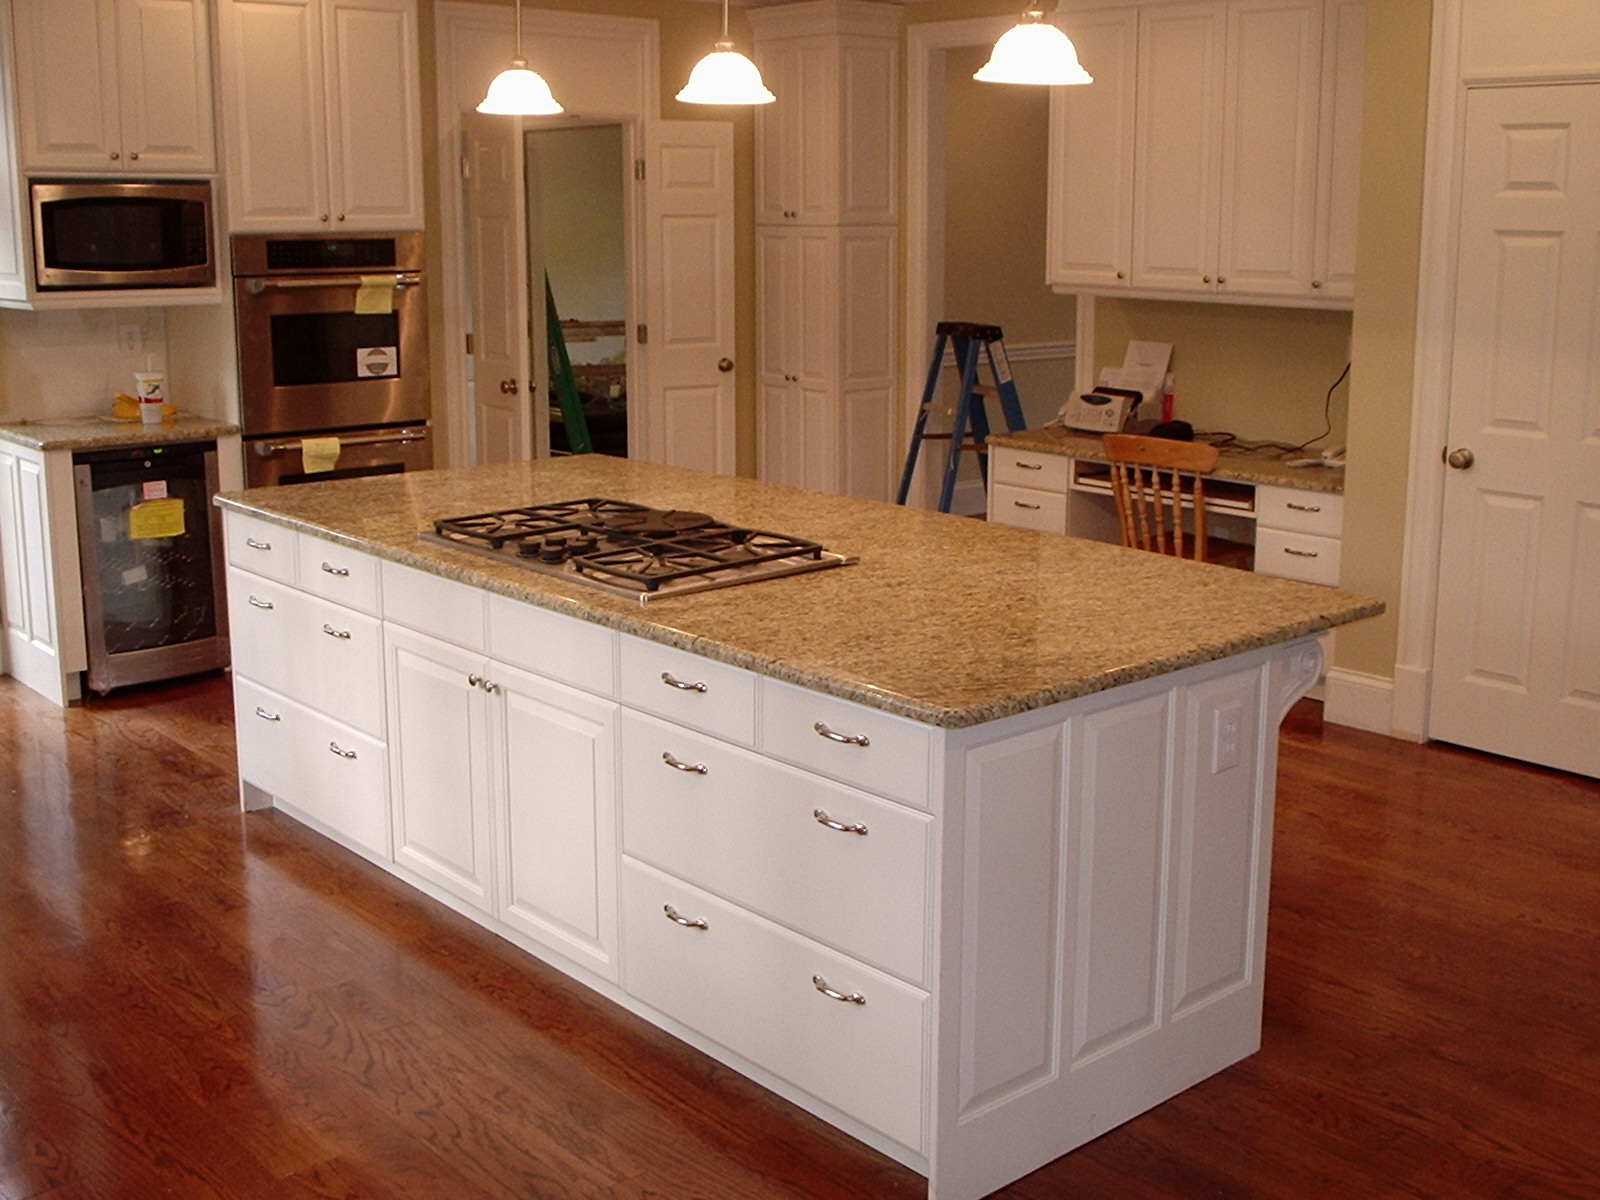 Kitchen cabinet plans dream house experience for Kitchen cabinets with